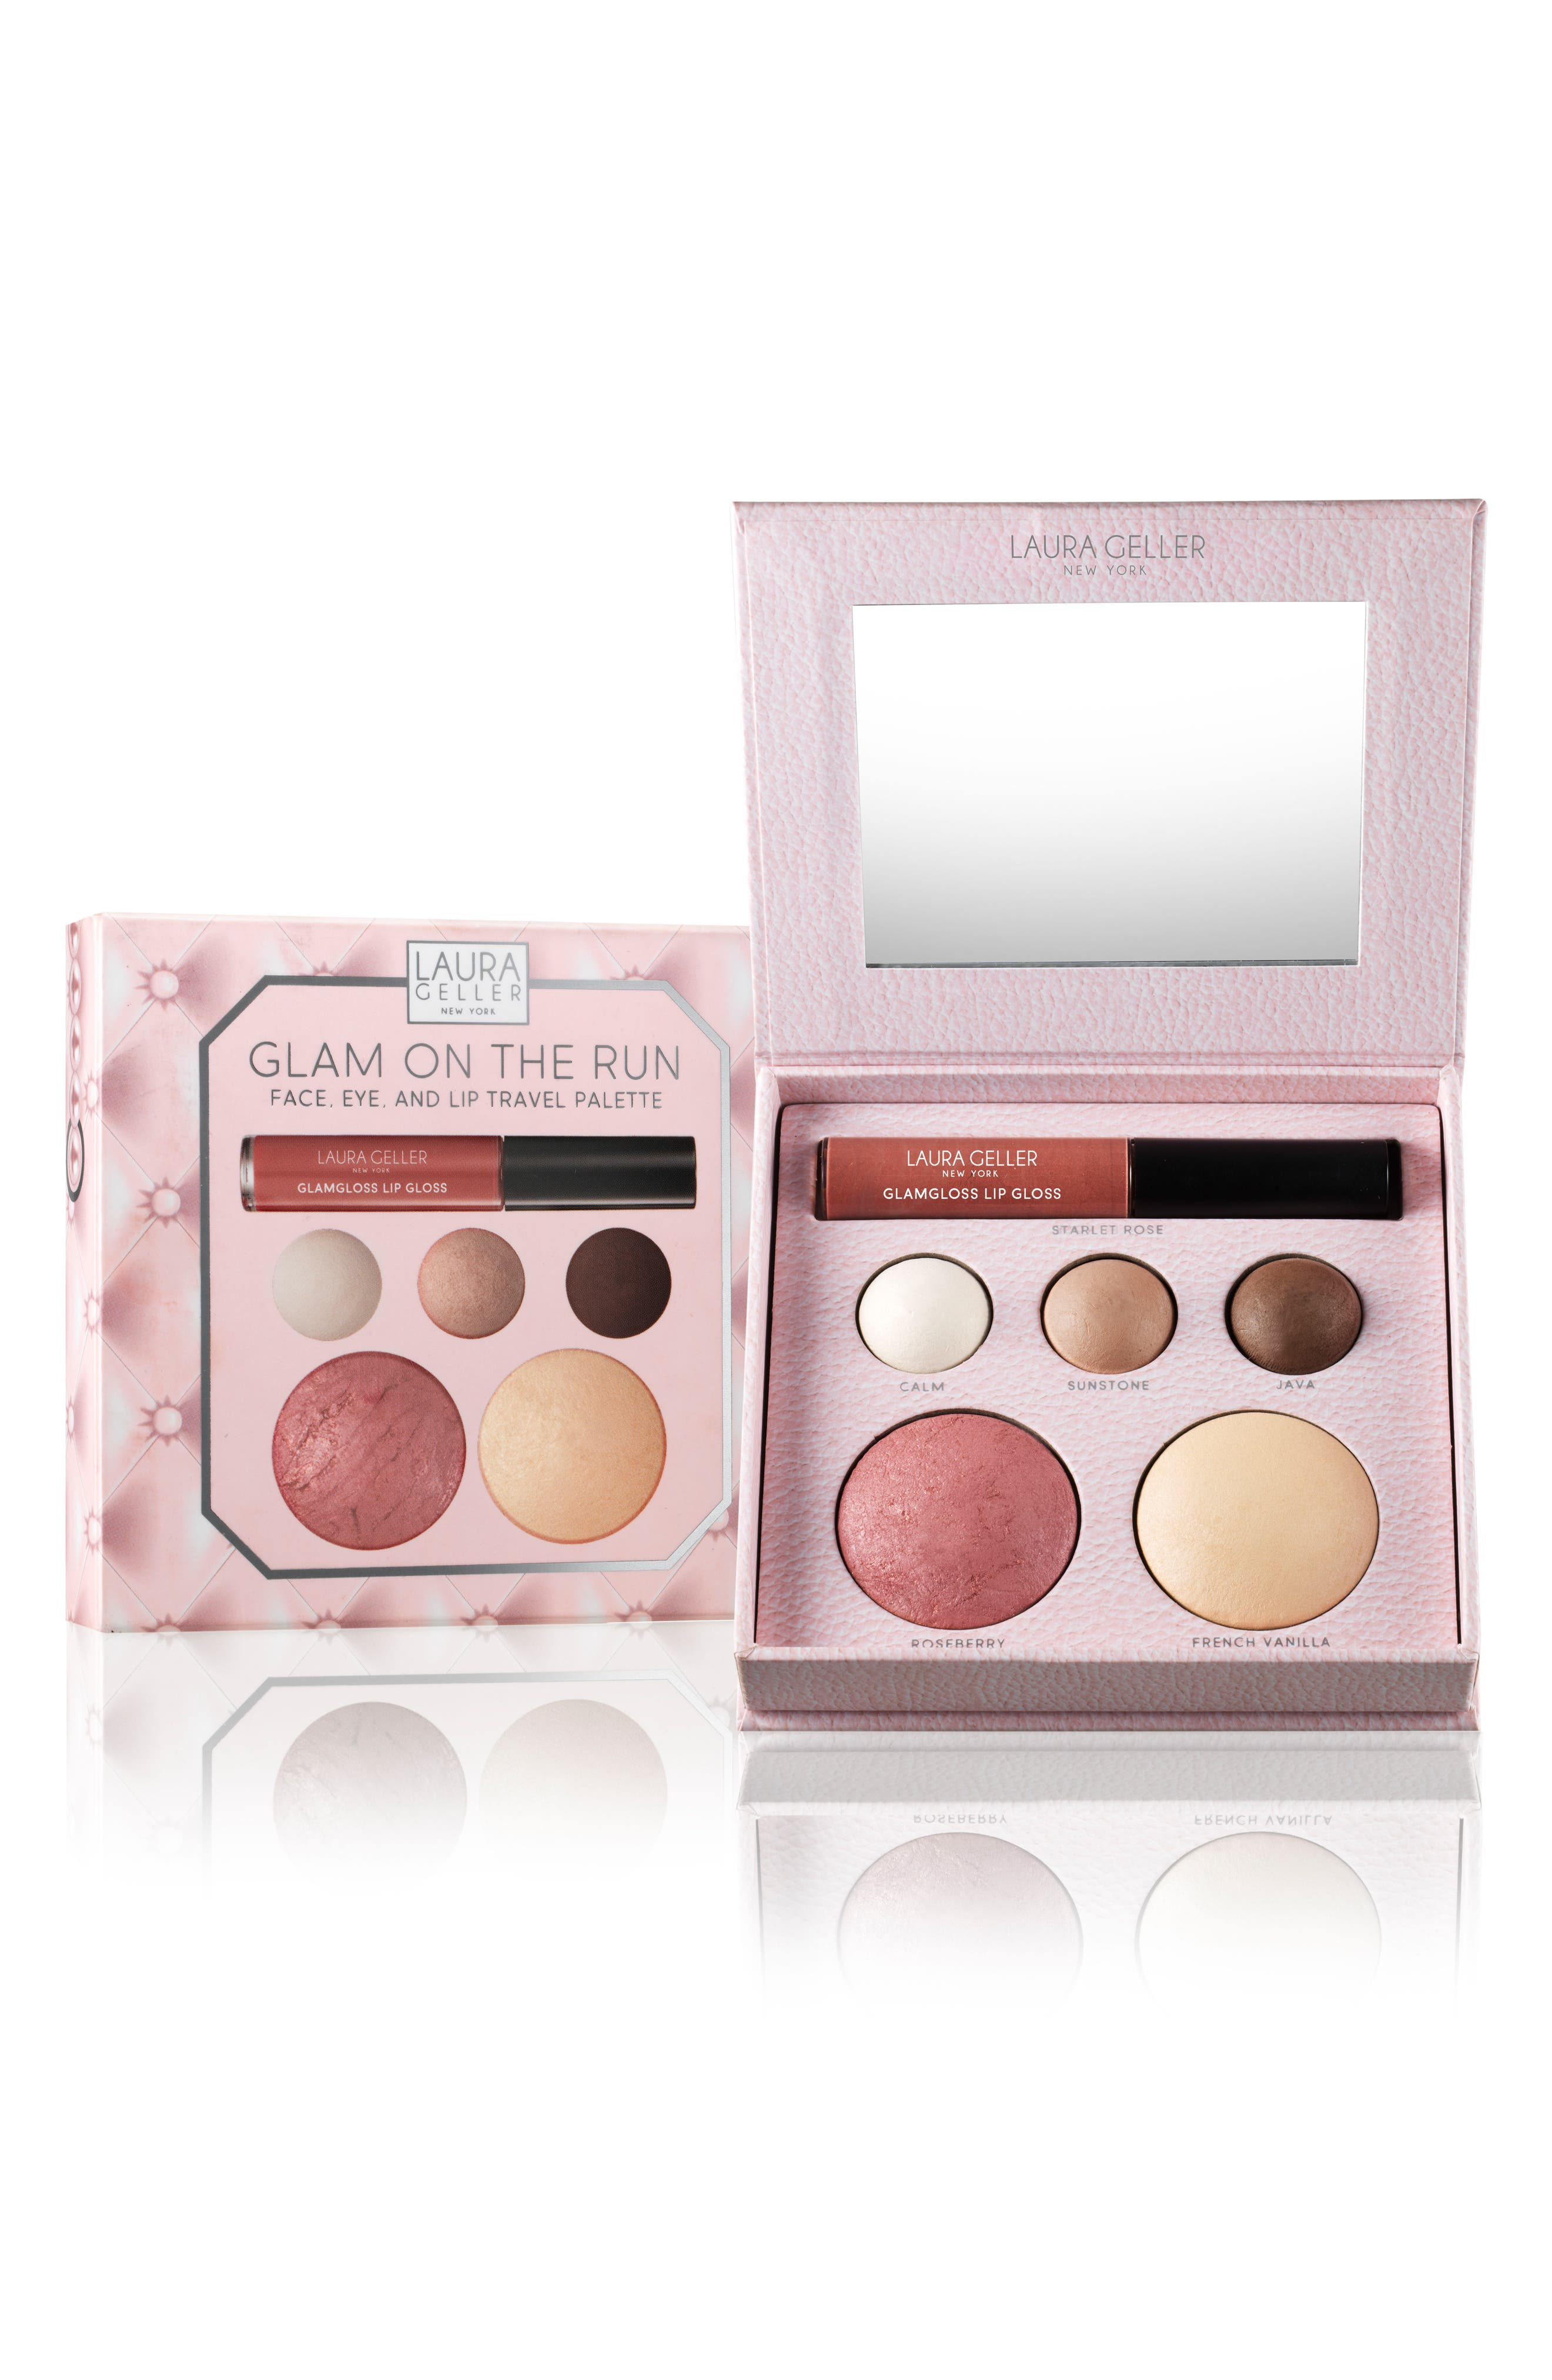 Glam on the Run Travel Palette,                             Main thumbnail 1, color,                             No Color